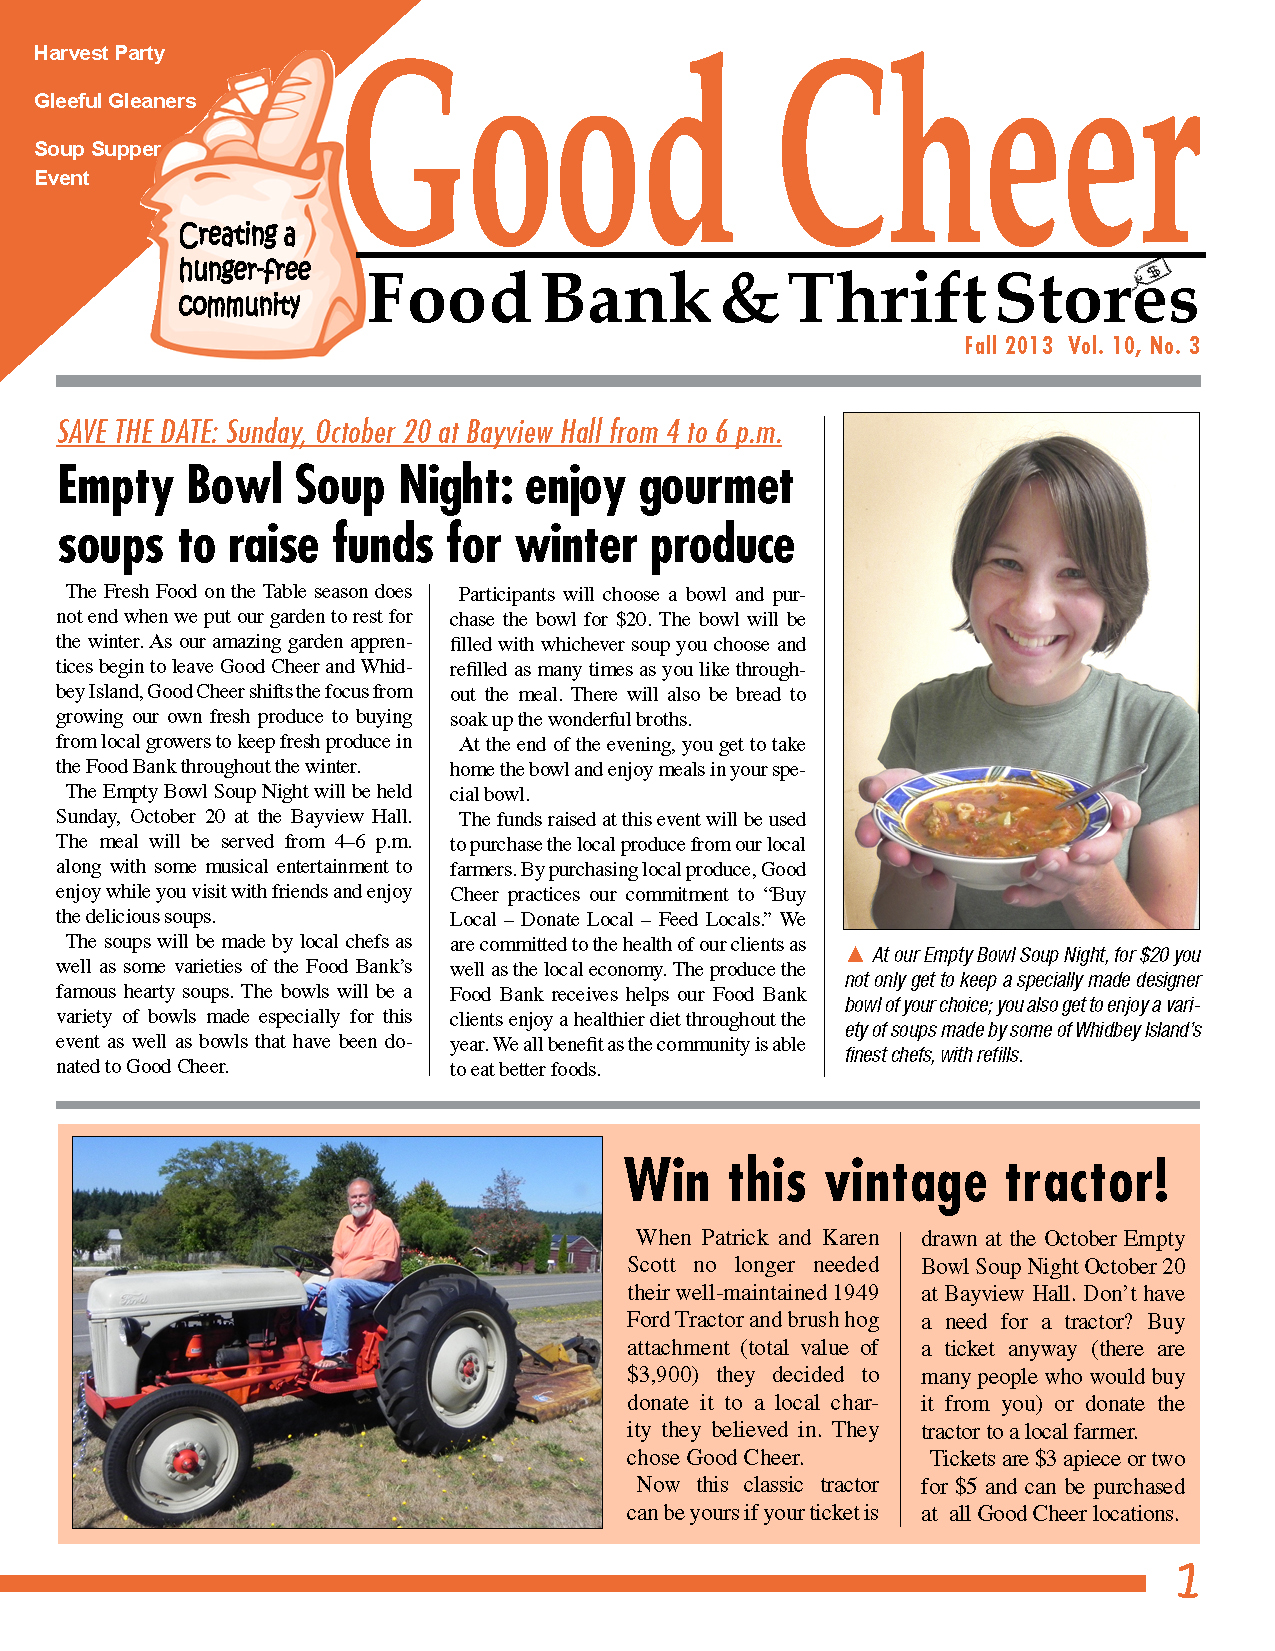 Read Good Cheer's Fall Newsletter Online Now